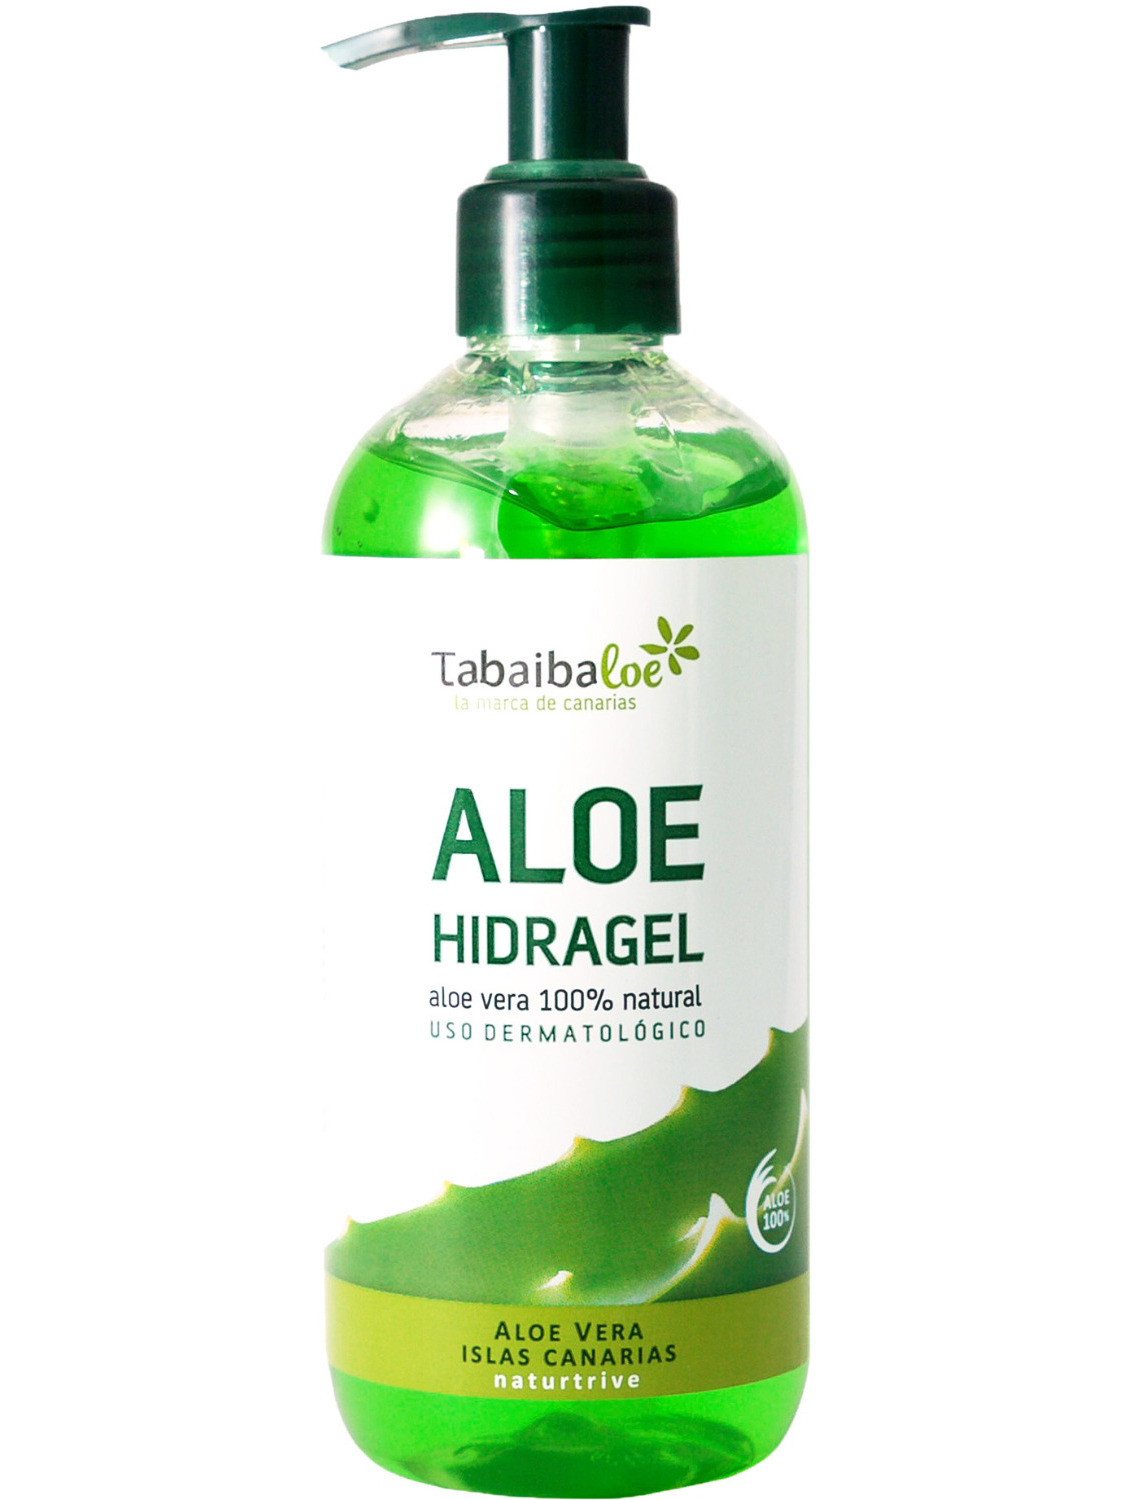 Aloe Vera Gel 100% Natural Hidragel Tabaiba Moisturizing 300 Ml